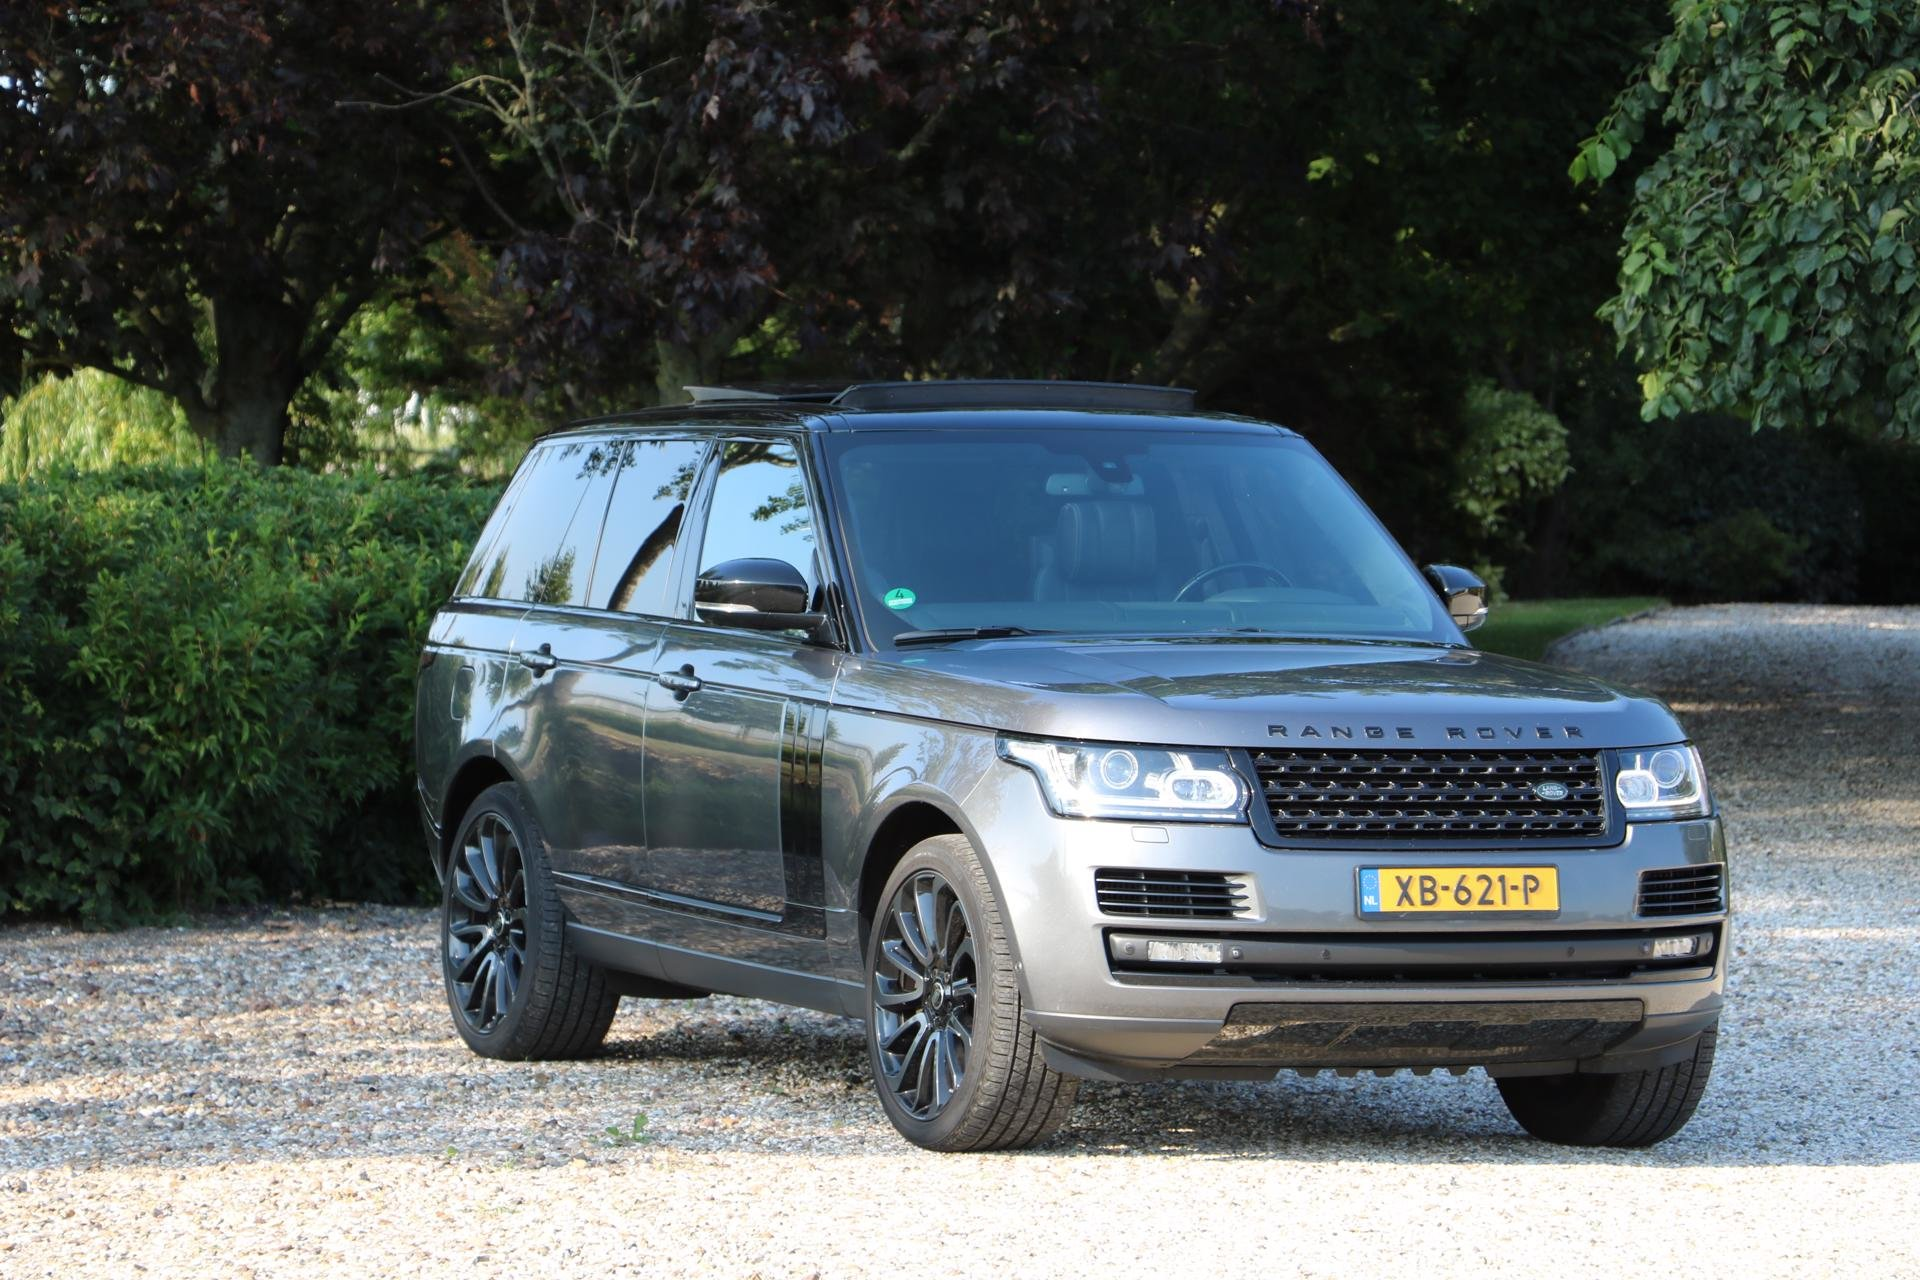 Real Art on Wheels | Range Rover Autobiography SDV8